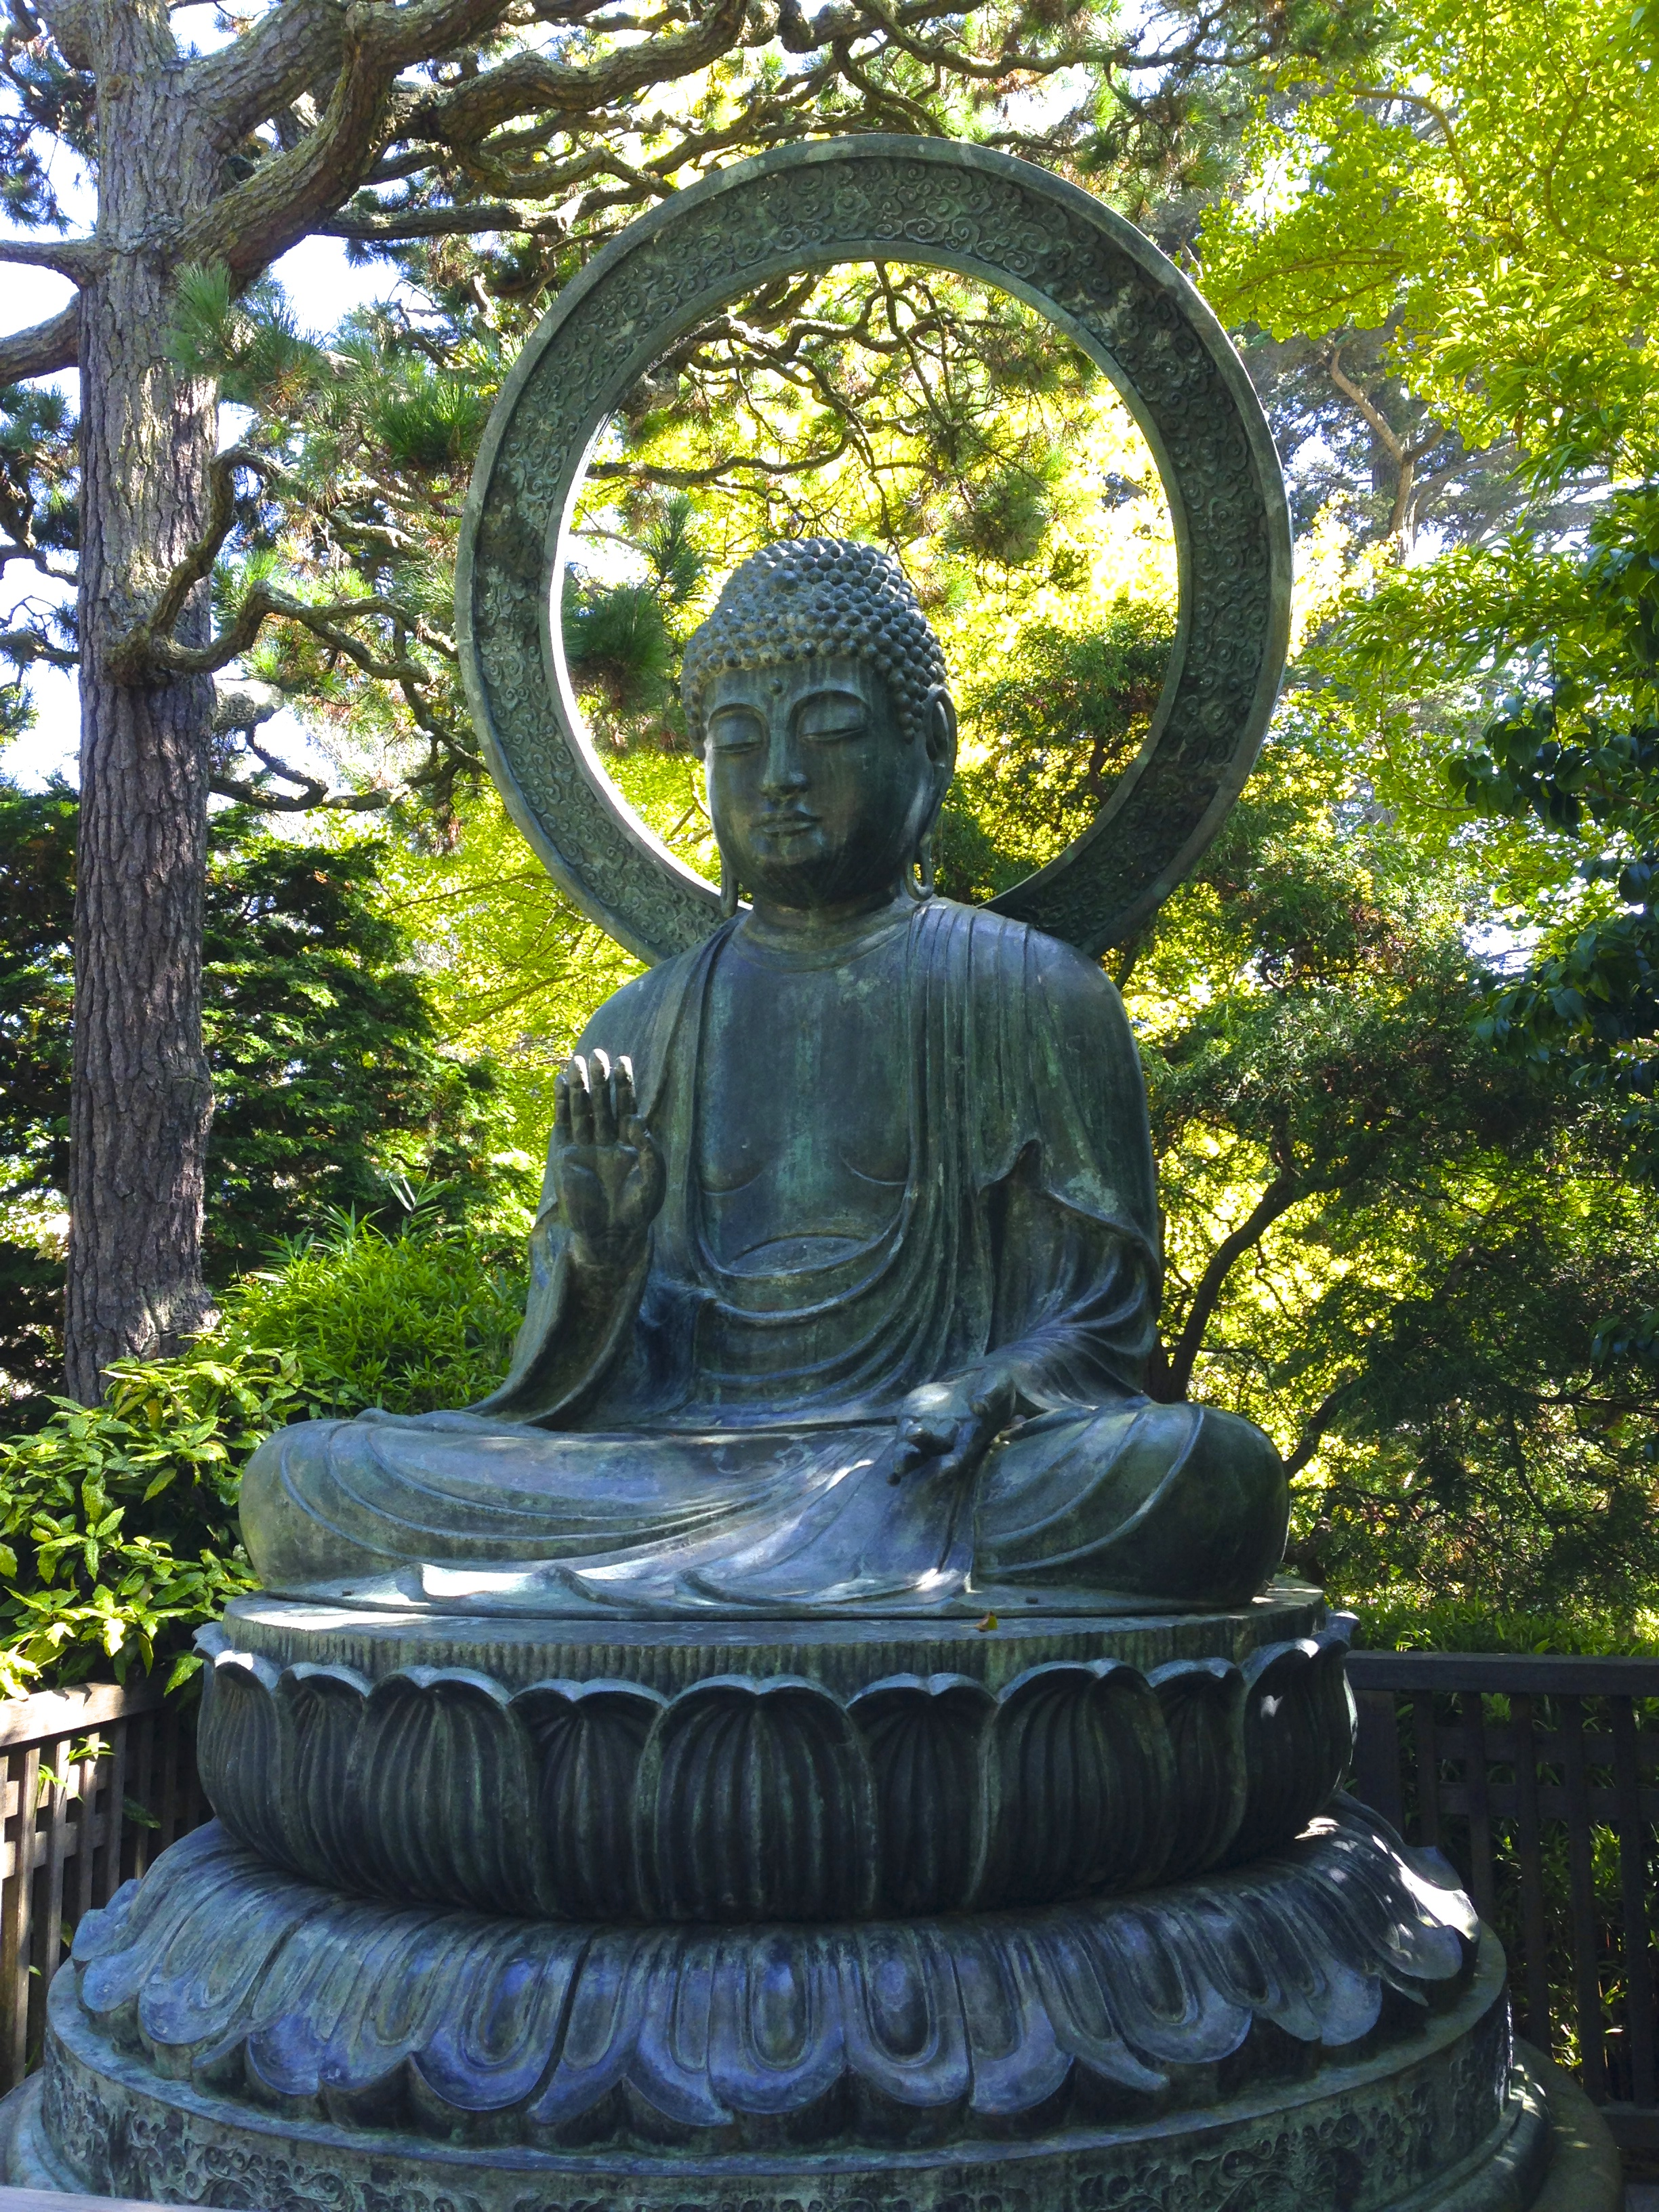 Buddha - Japanese Garden, Golden Gate Park, San Francisco